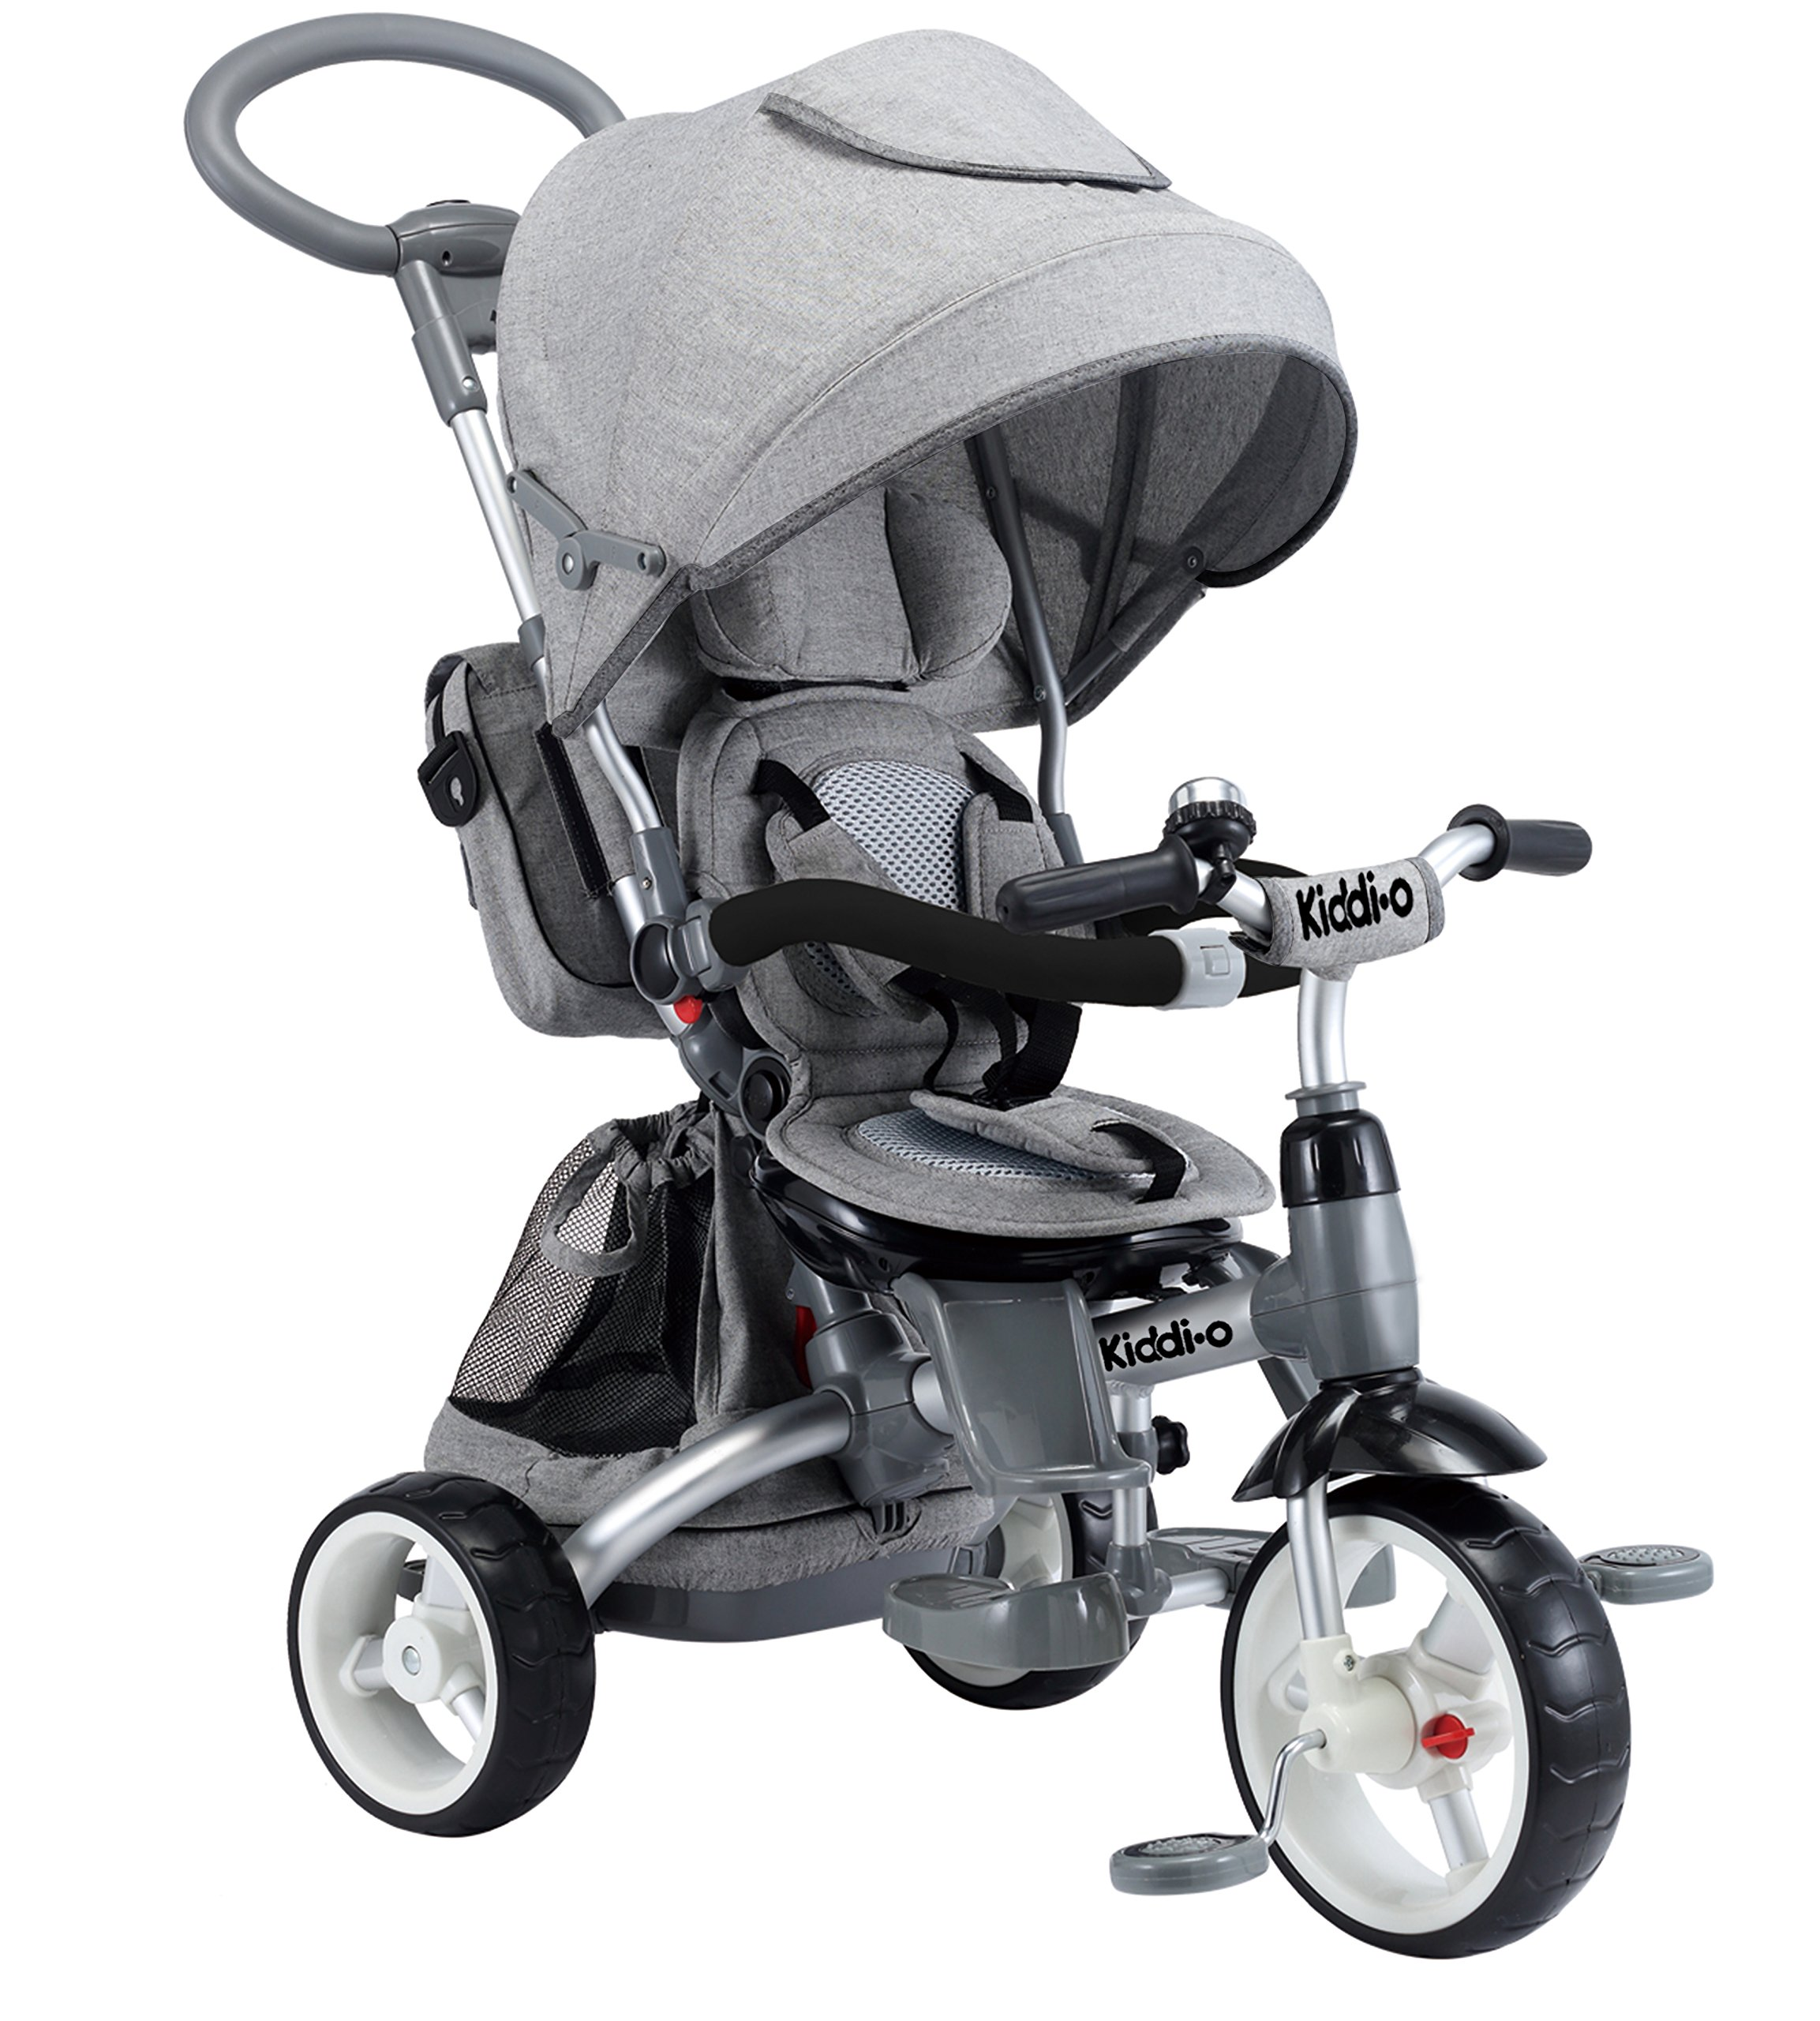 Kiddi-o by Kettler 6-in-1 Ride: Safe Stroller and Multi-Trike, Gray, Youth Ages 2.5+